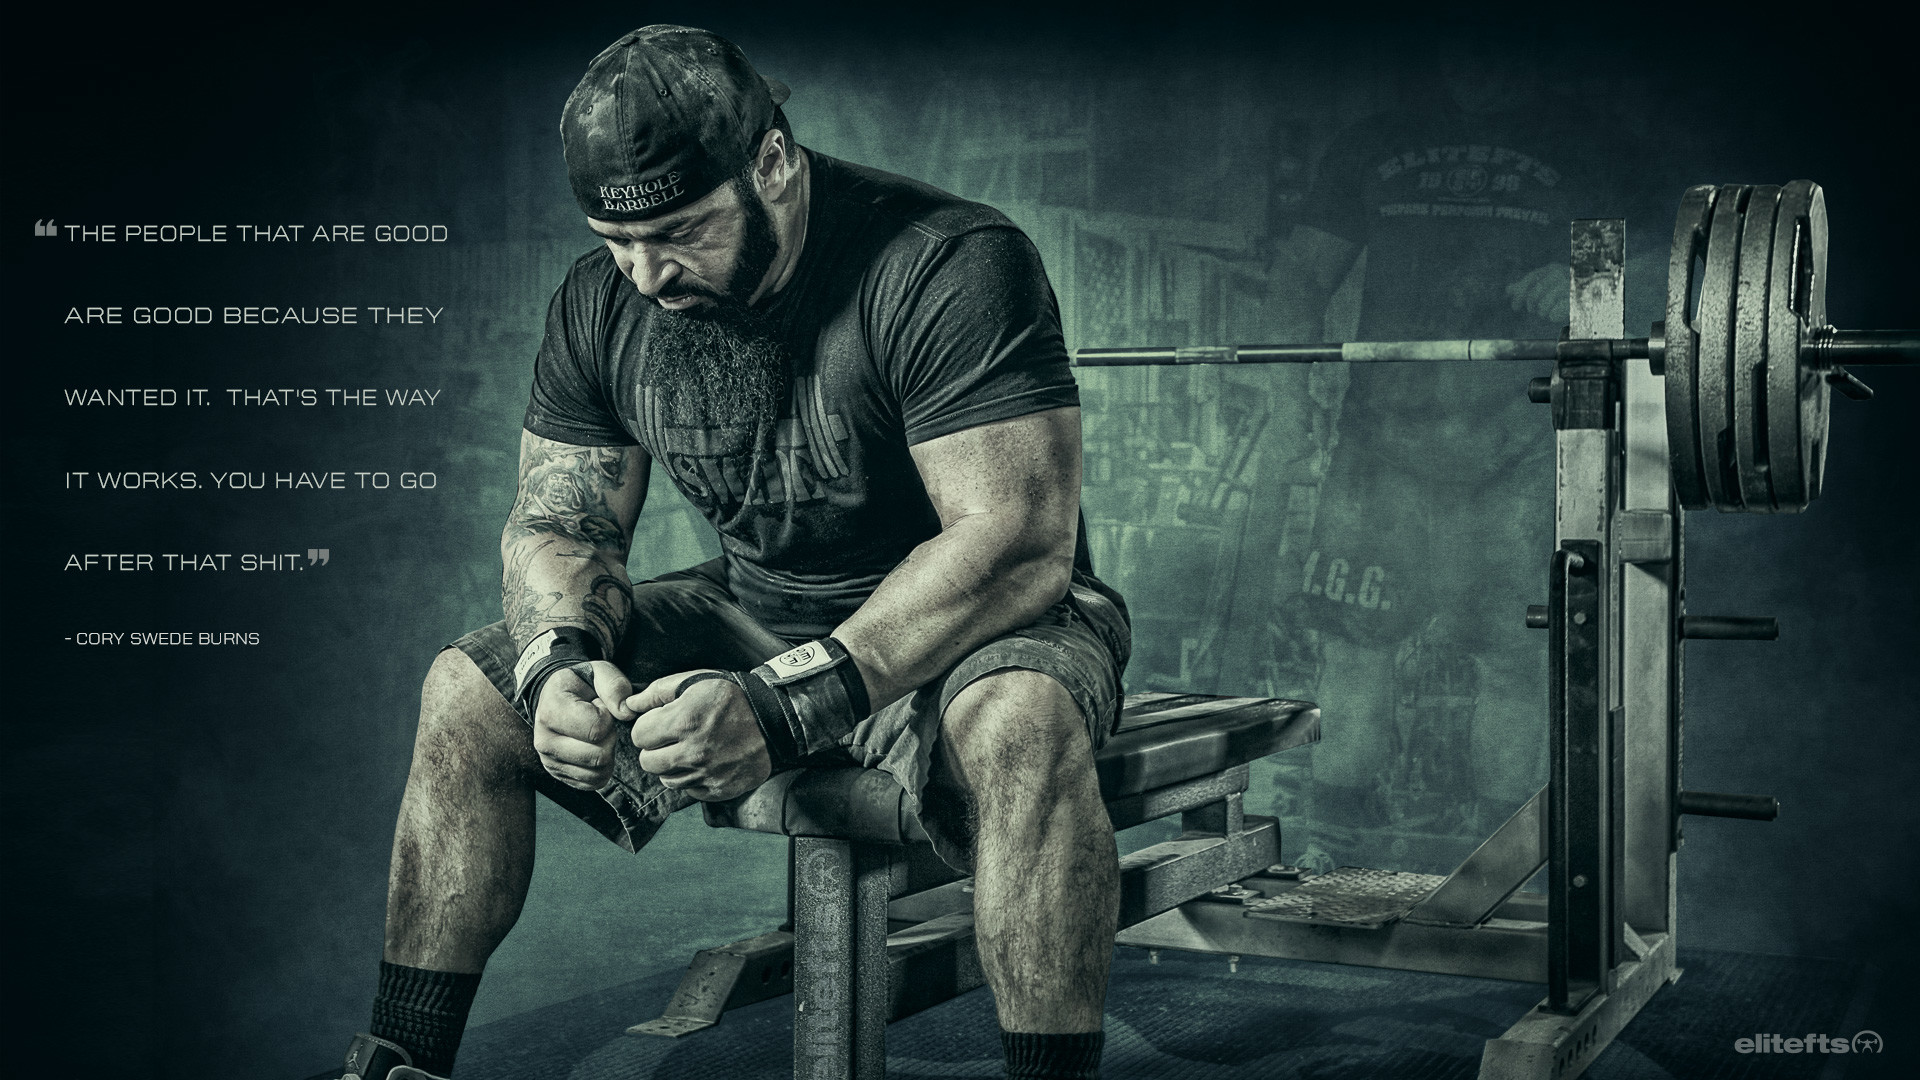 Powerlifting Wallpaper Desktop (69+ Images